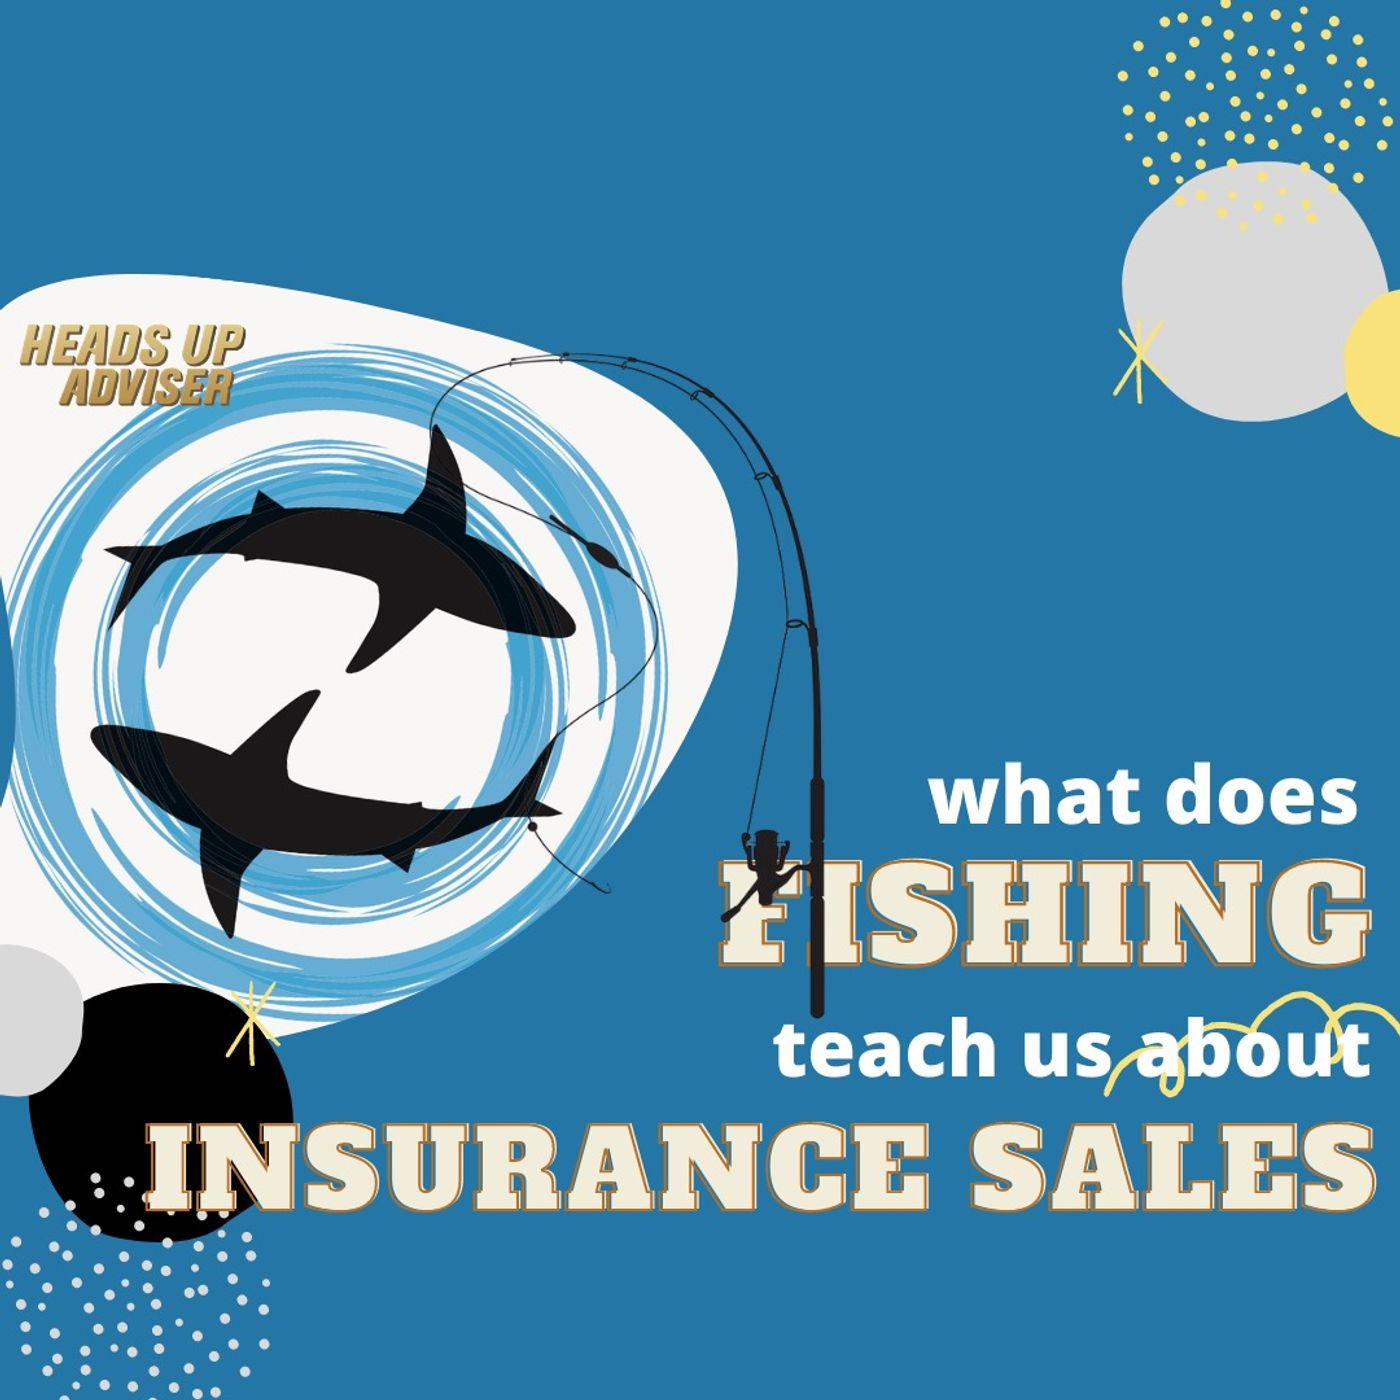 What Does Fishing Teach Us About Insurance Sales